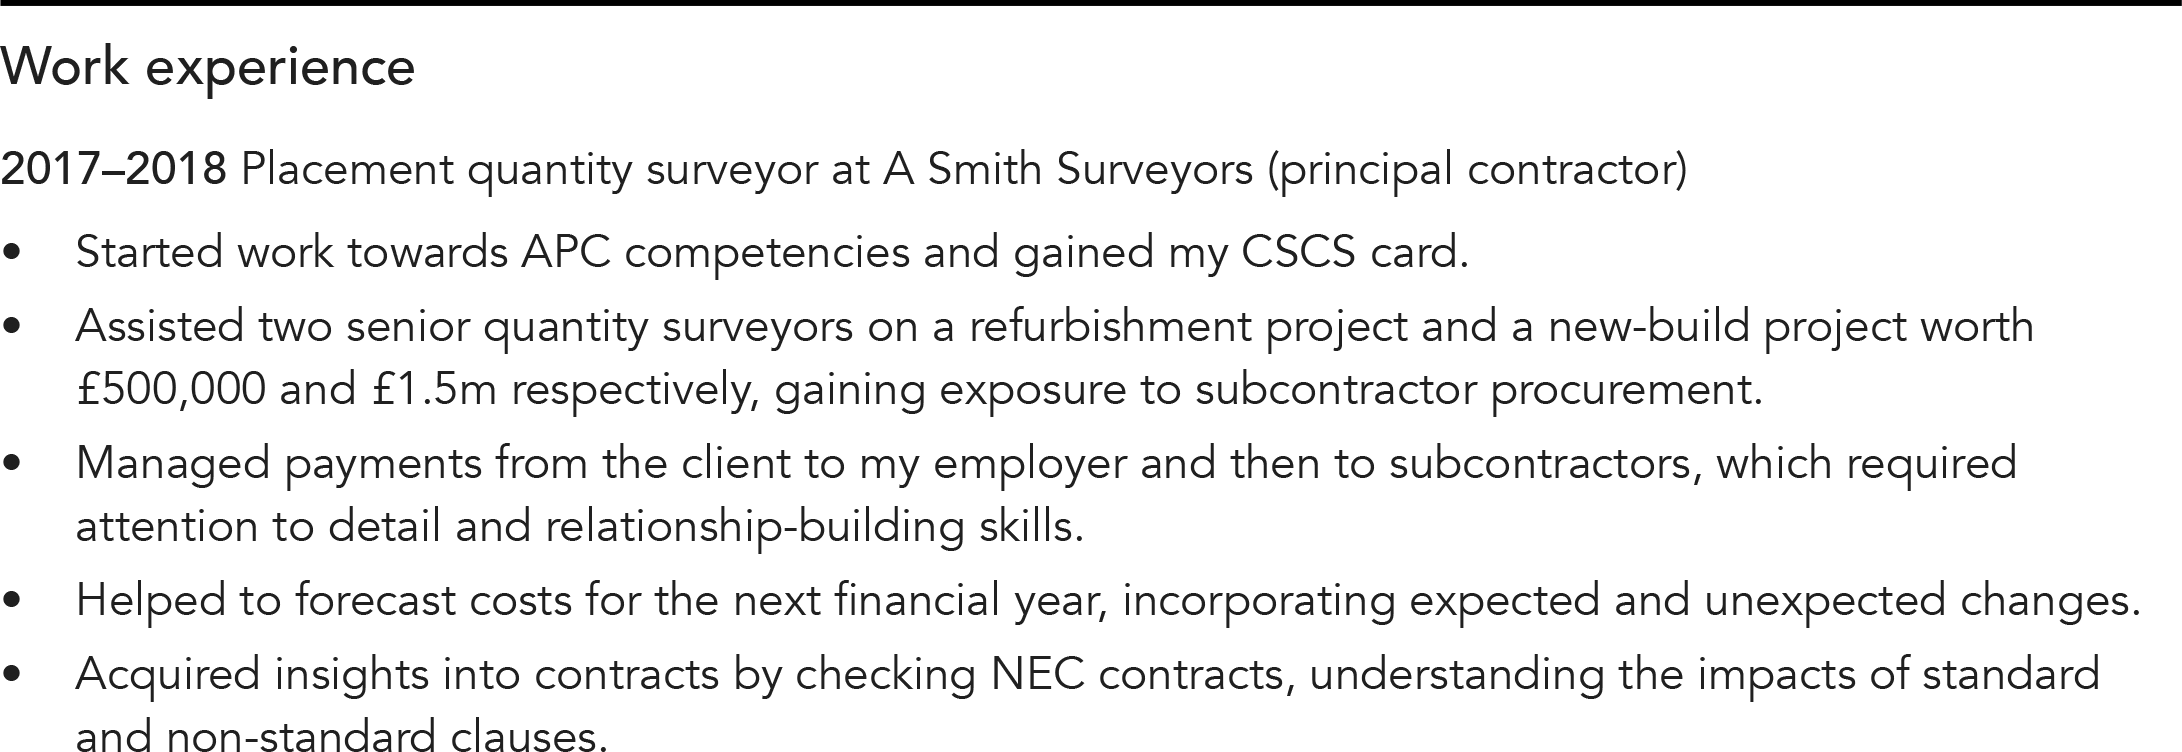 CV snippet; work experience example with date, job title, employer name and description of key achievements and skills